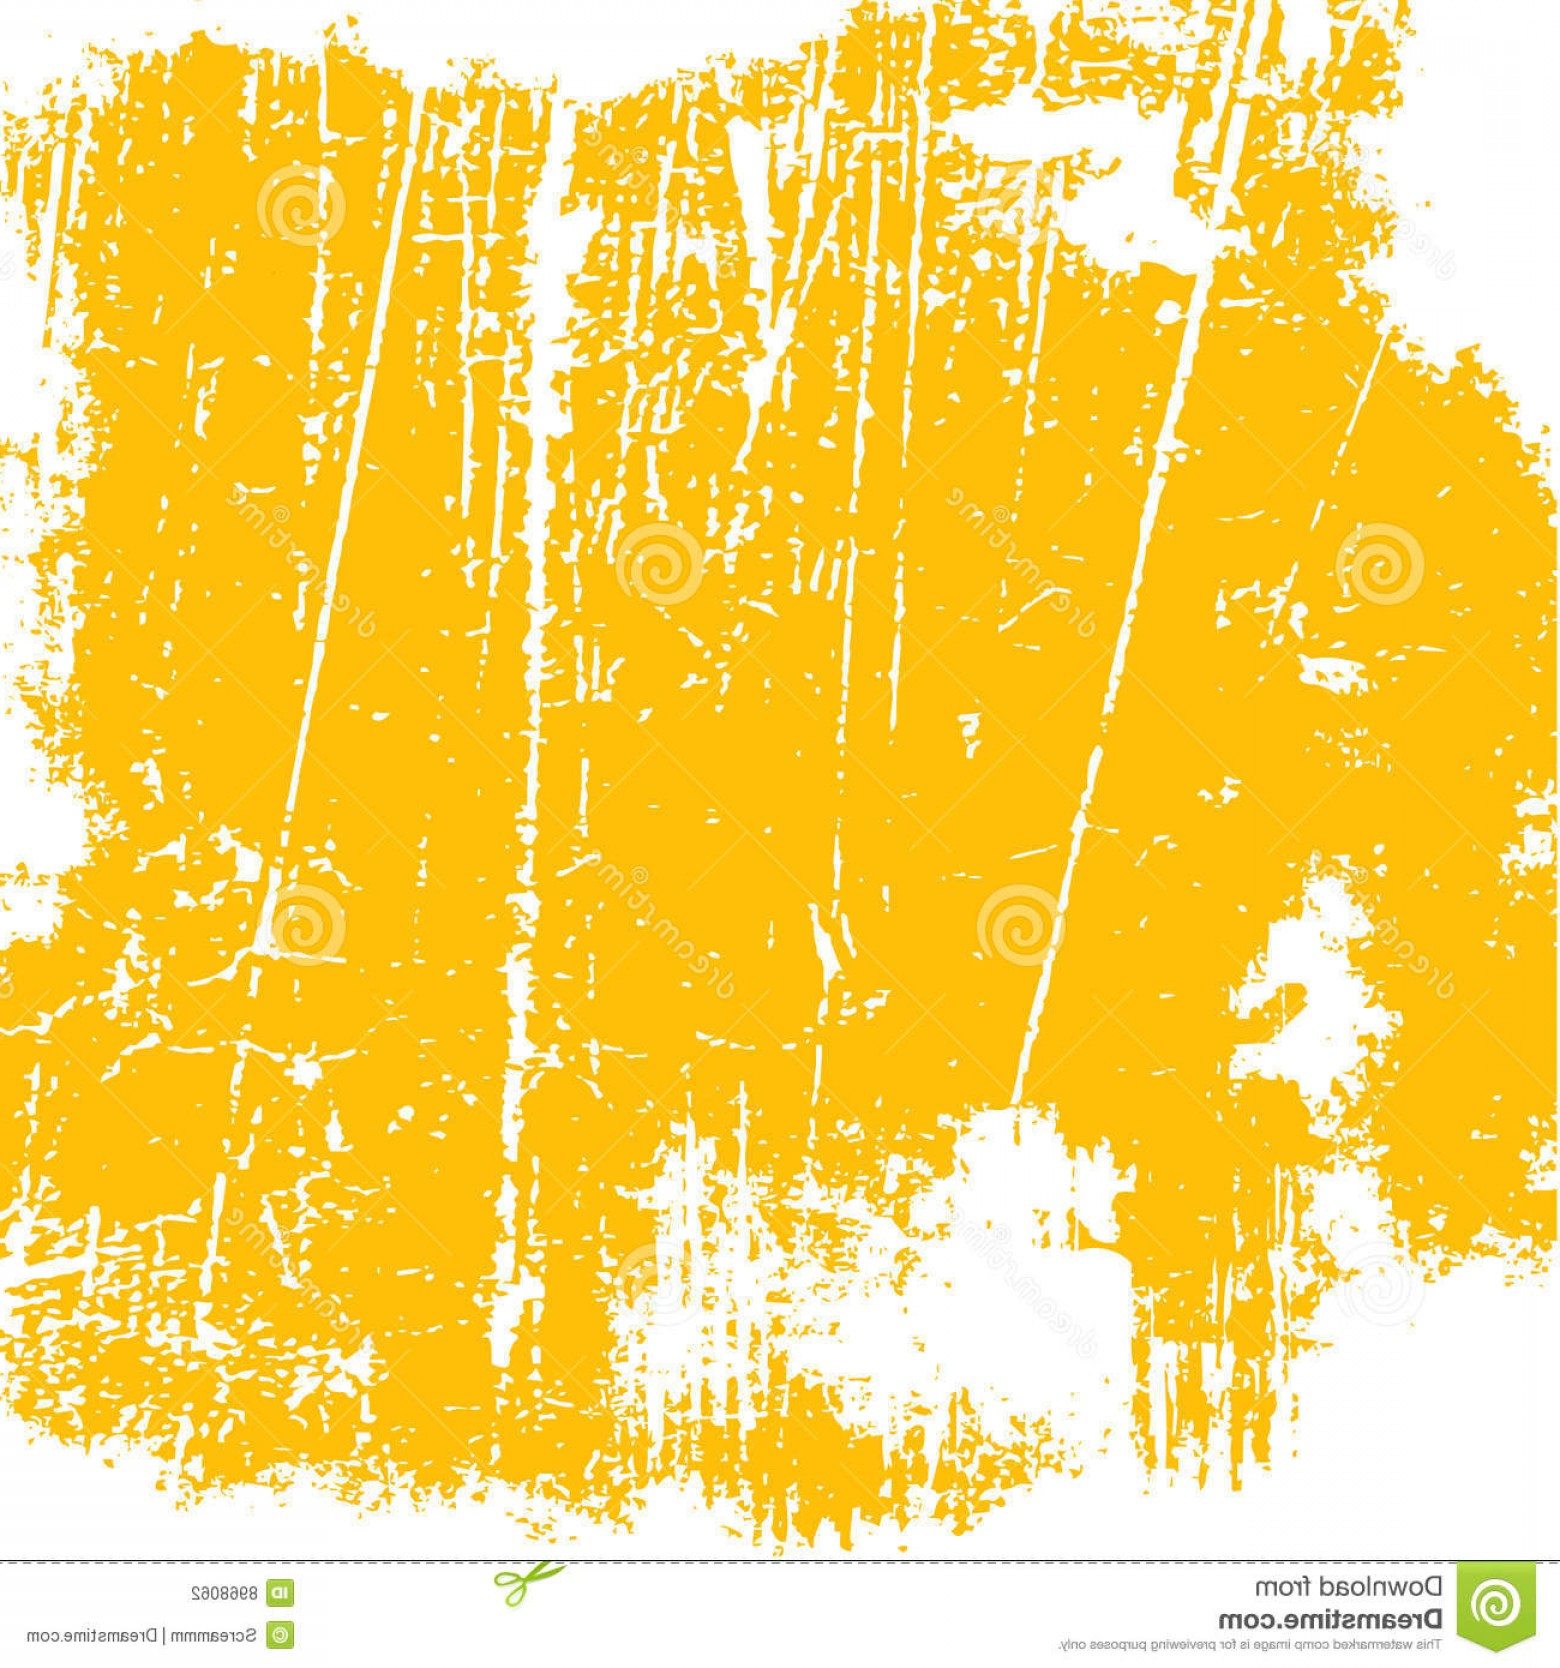 Grunge Background Vector Graphic: Stock Photography Grunge Vector Background Image